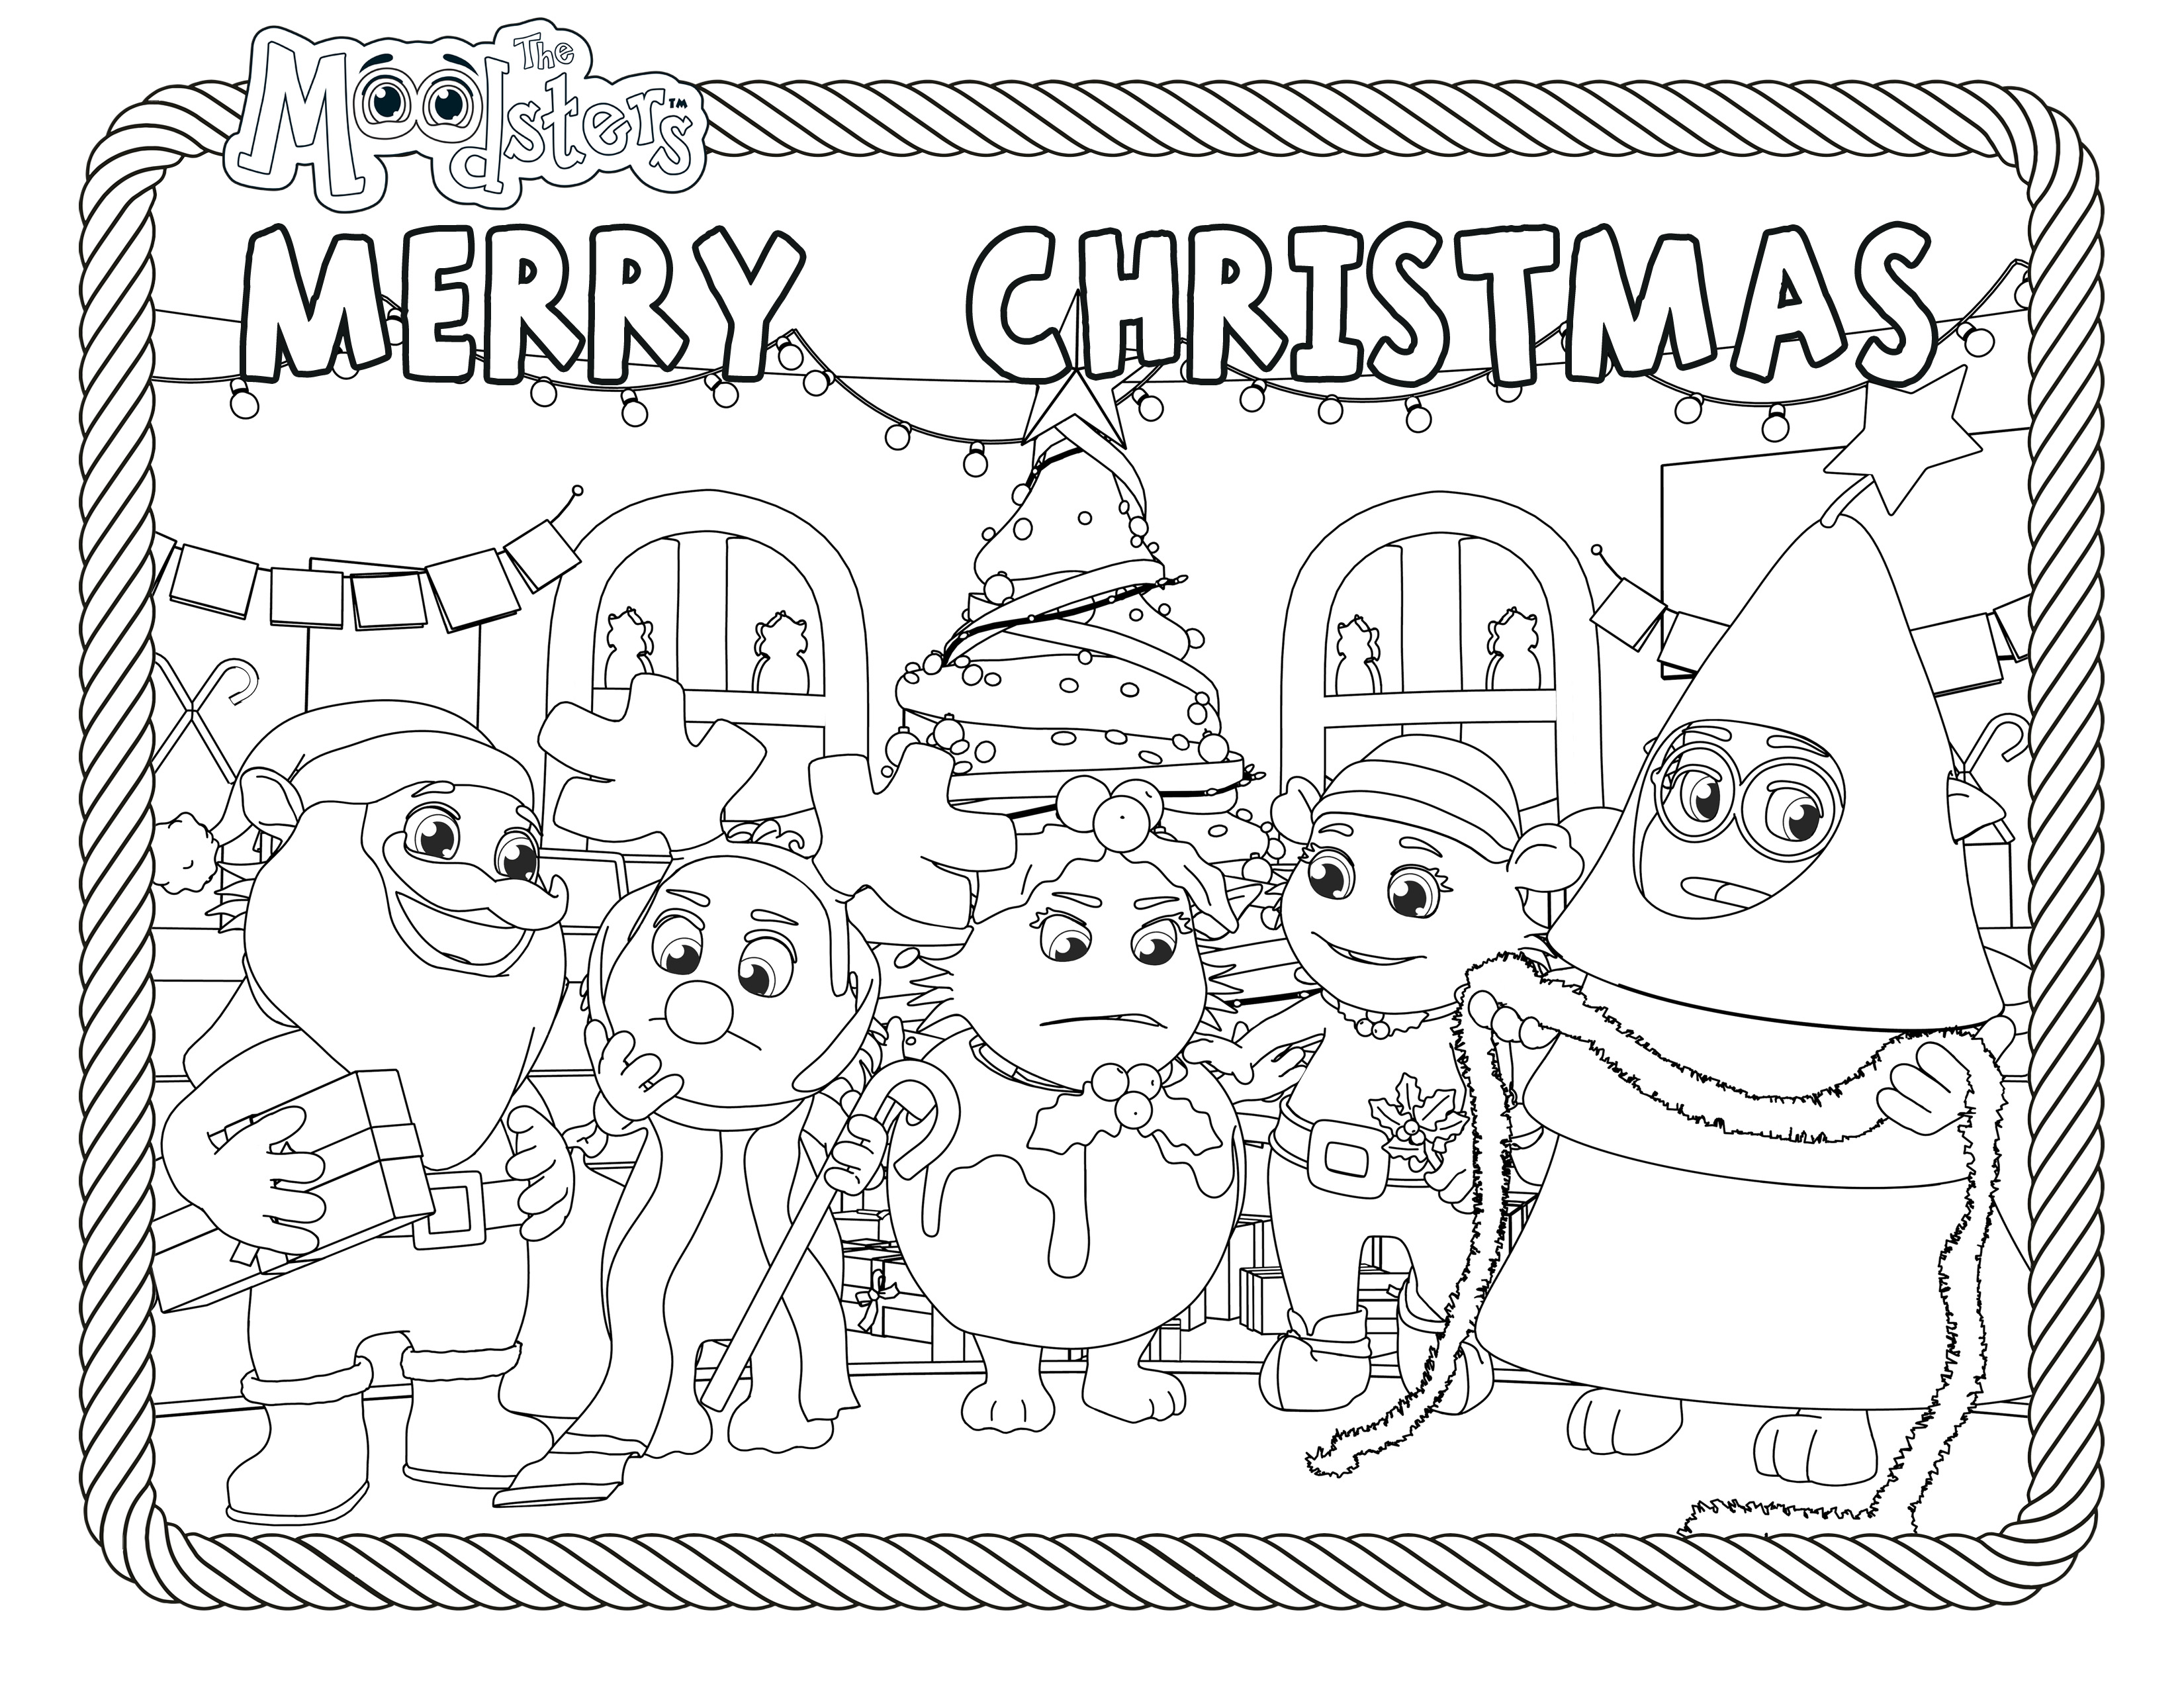 Christmas Coloring In Cards With Merry From The Moodsters Card